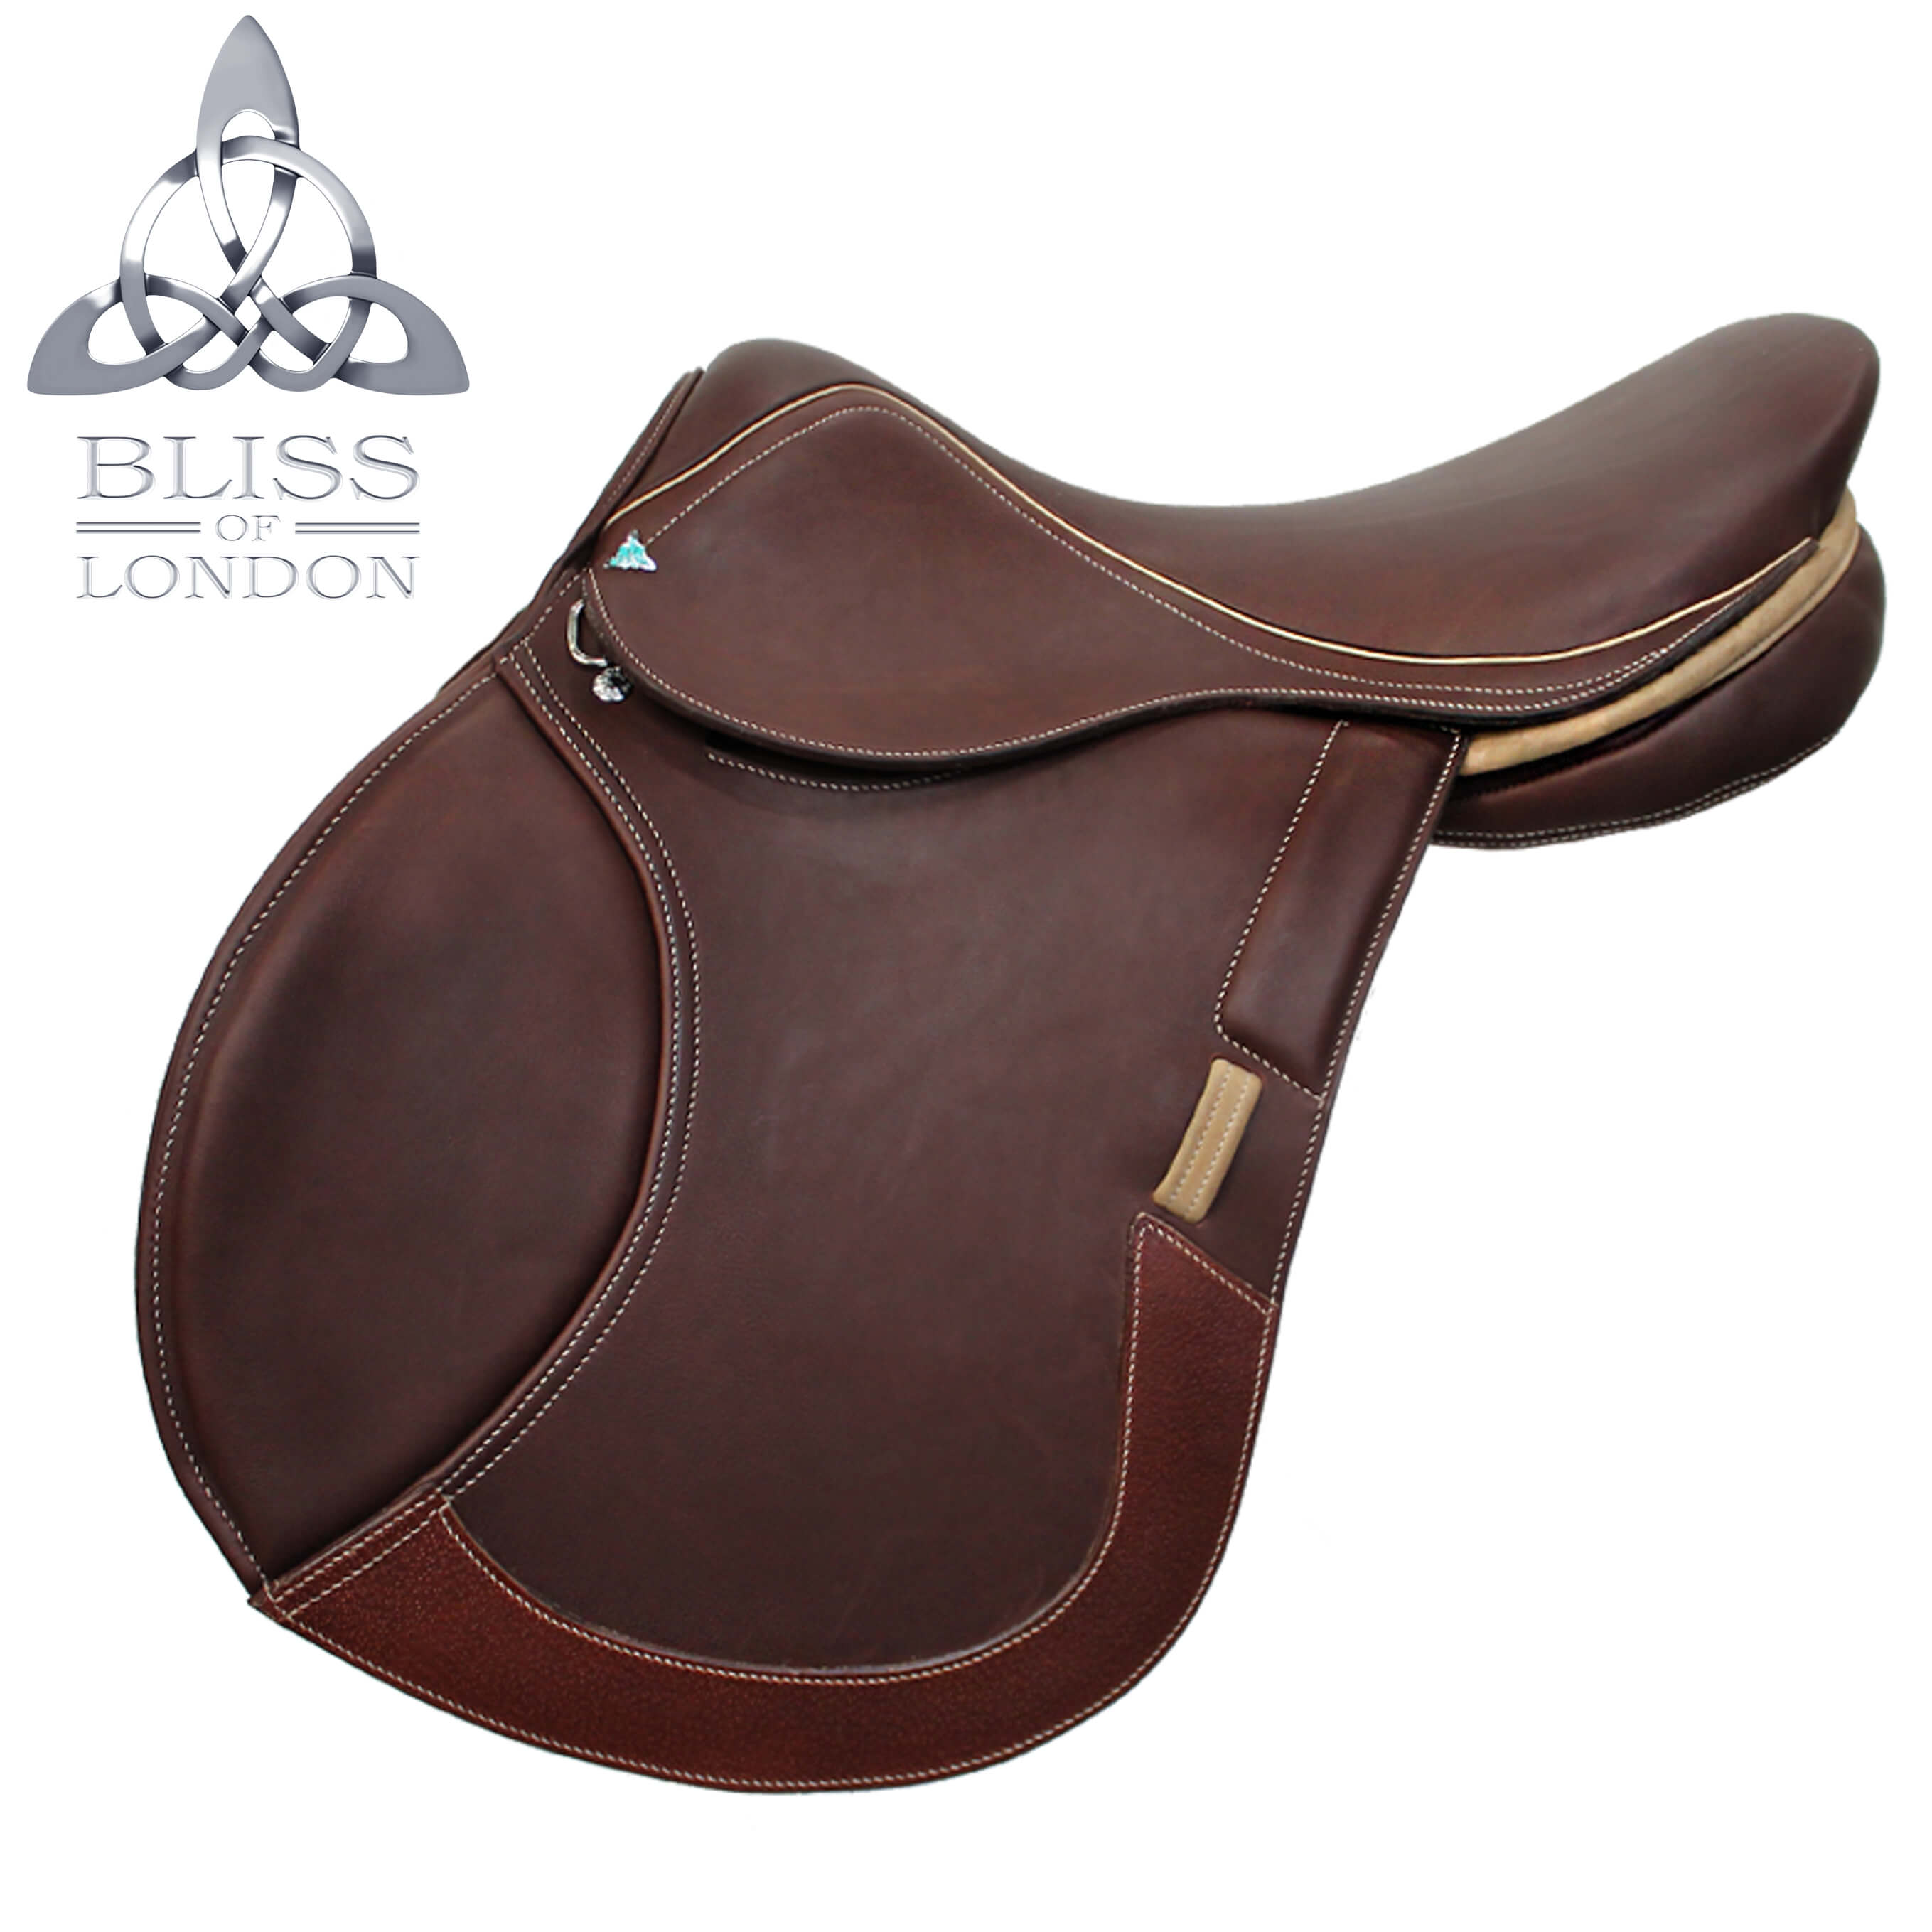 1A Product page 1 - sportiva jump side 571 Bliss Saddle Image Template2